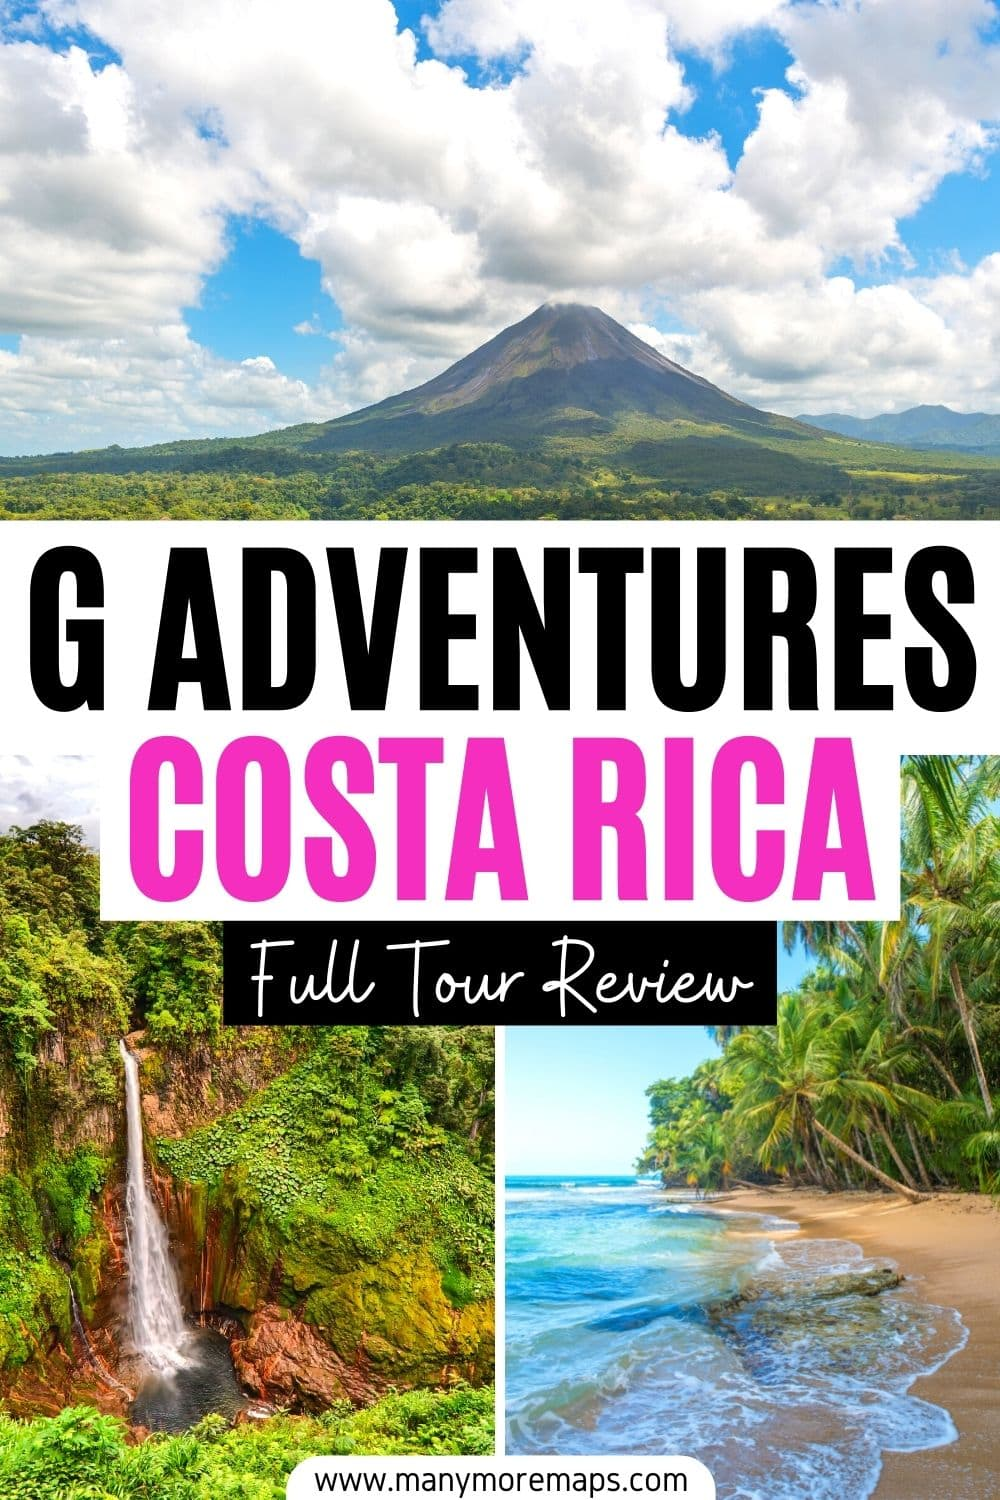 G Adventures is a travel company that run awesome guided tours all over the world, but I decided to book on their Basic Costa Rica tour, a group tour designed for 18-35 year olds looking to travel in Costa Rica on a budget. Here is my full Costa Rica G Adventures review, including whether or not their group tours are good for solo female travel. Costa Rica itinerary Costa Rica budget travel Costa Rica group tours